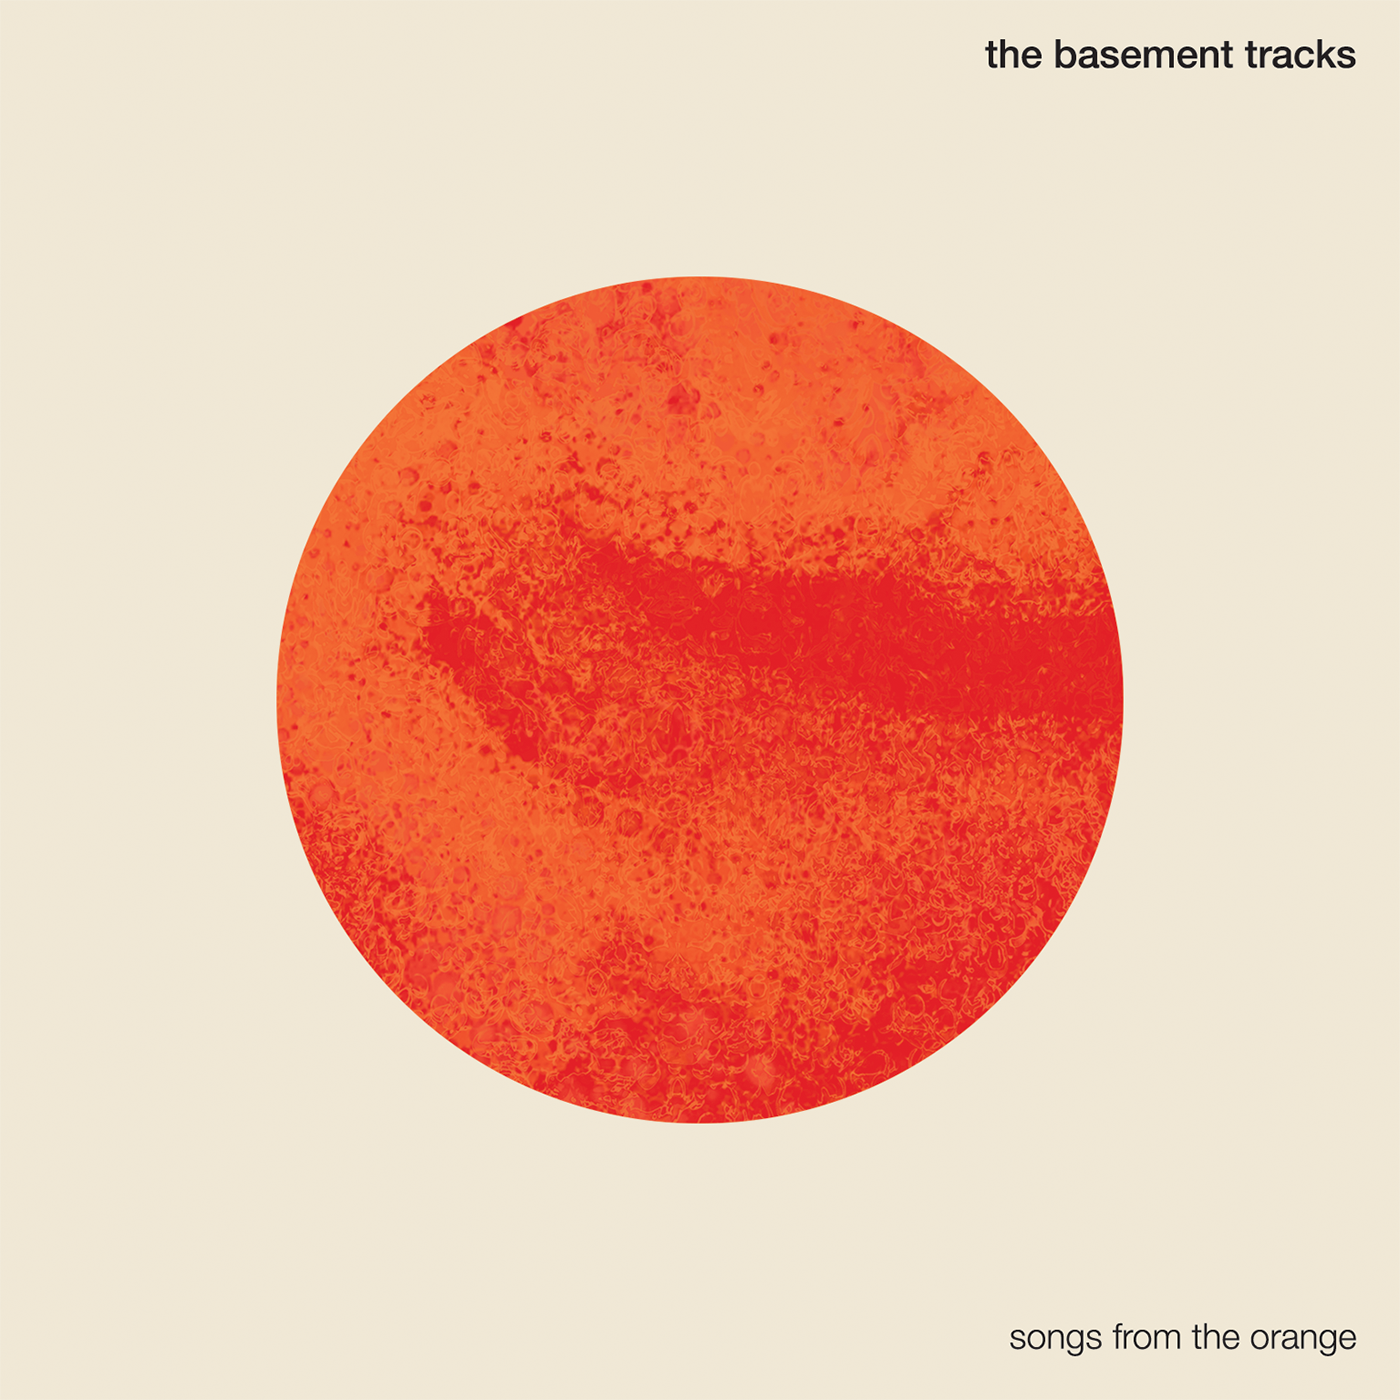 Cover developed for Basement Tracks' EP Songs From The Orange